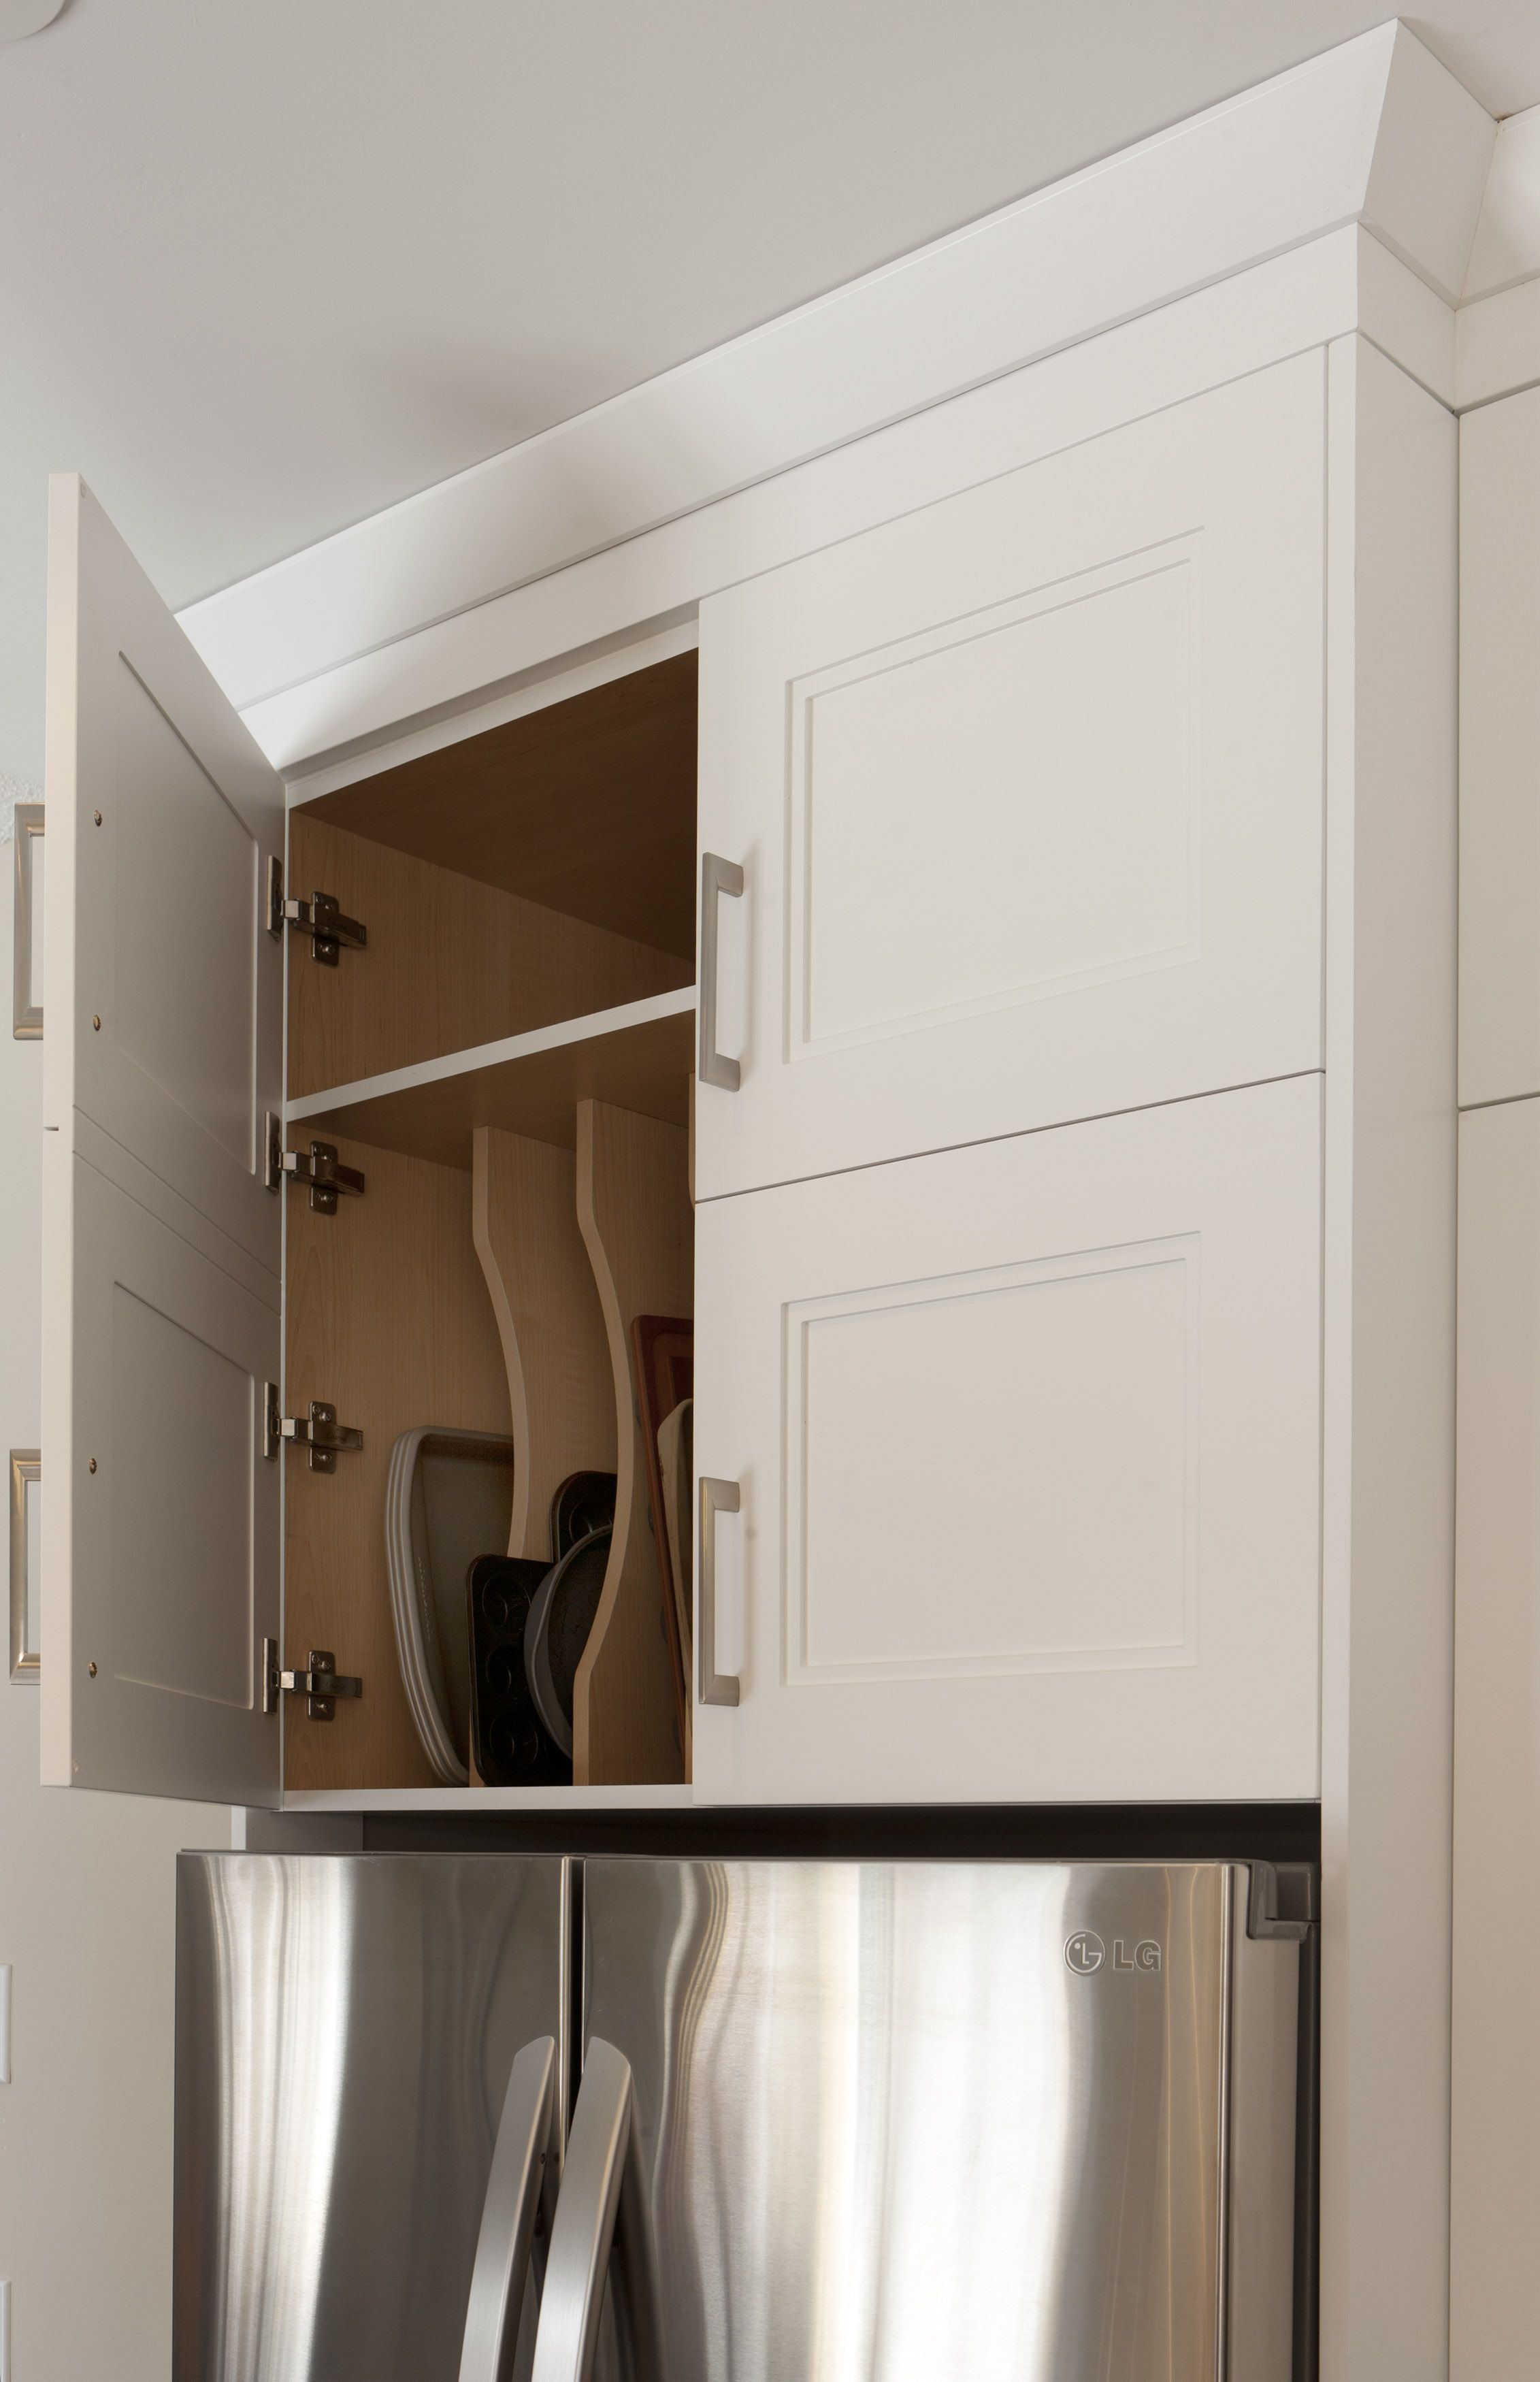 Tray Storage Above the Fridge- Easy and Accessible #ChervinKitchen